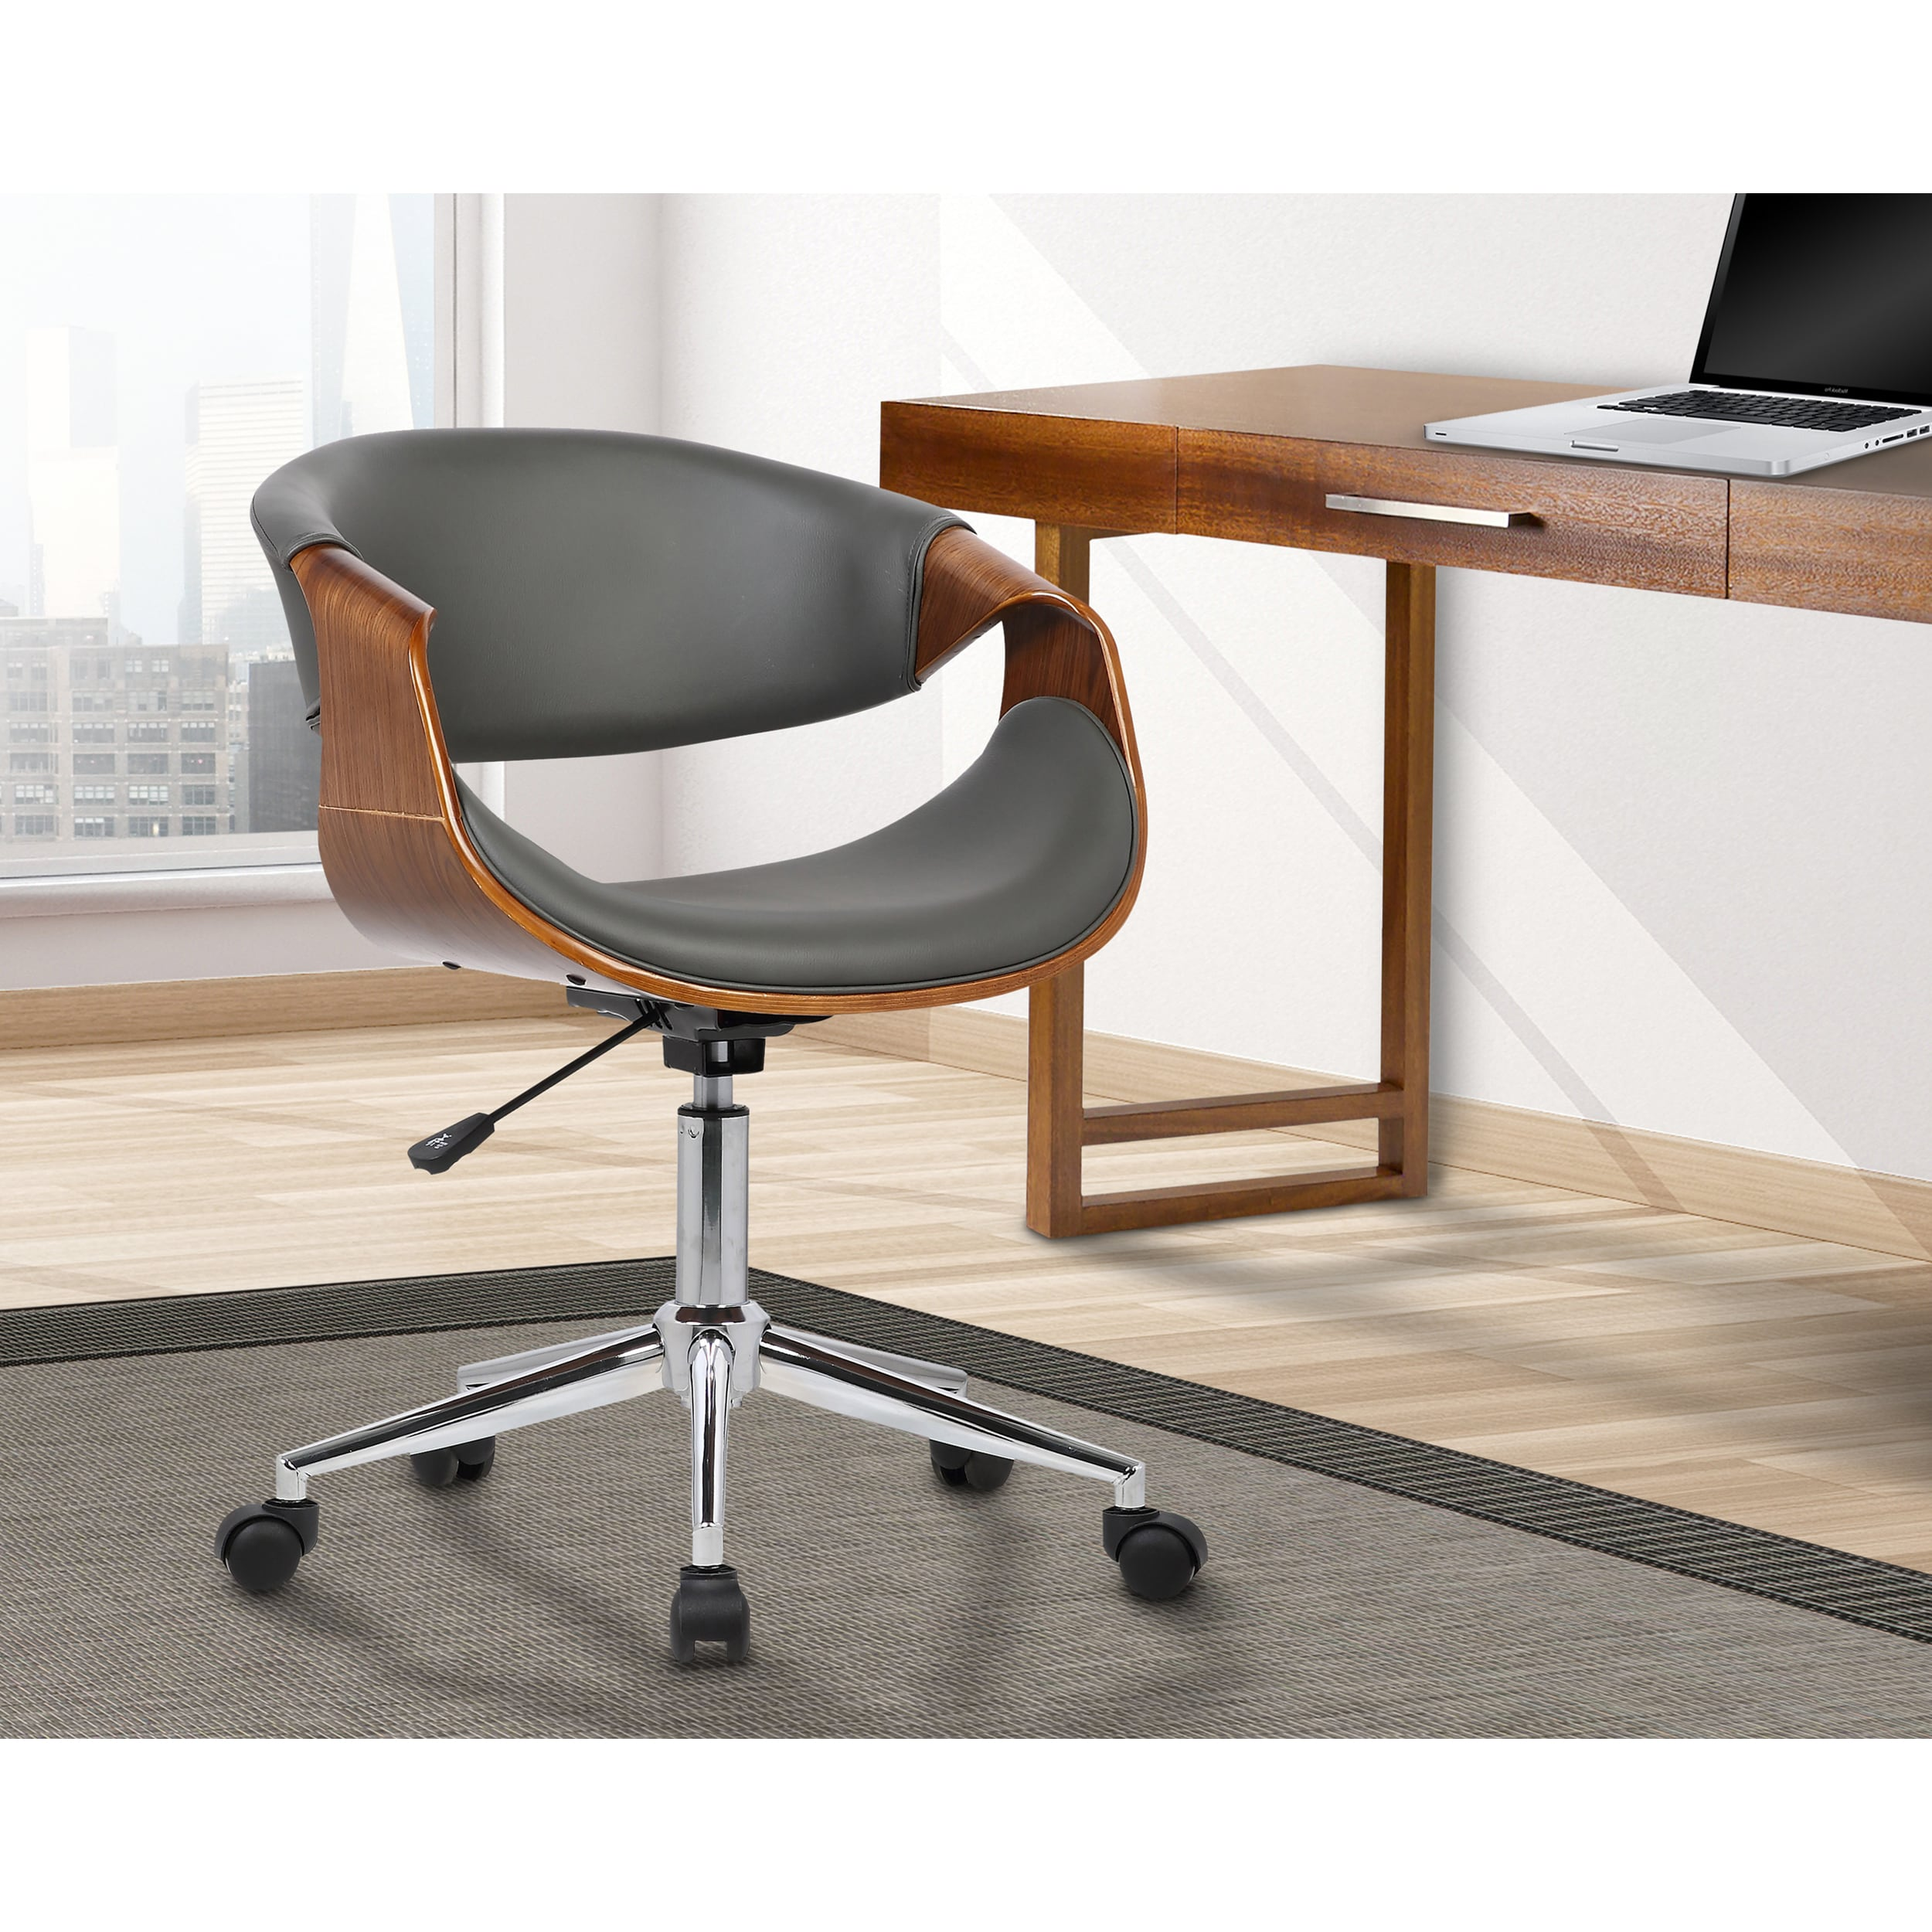 Image of: Shop Black Friday Deals On Armen Living Geneva Mid Century Office Chair In Chrome Finish With Grey Faux Leather And Walnut Vene On Sale Overstock 16326468